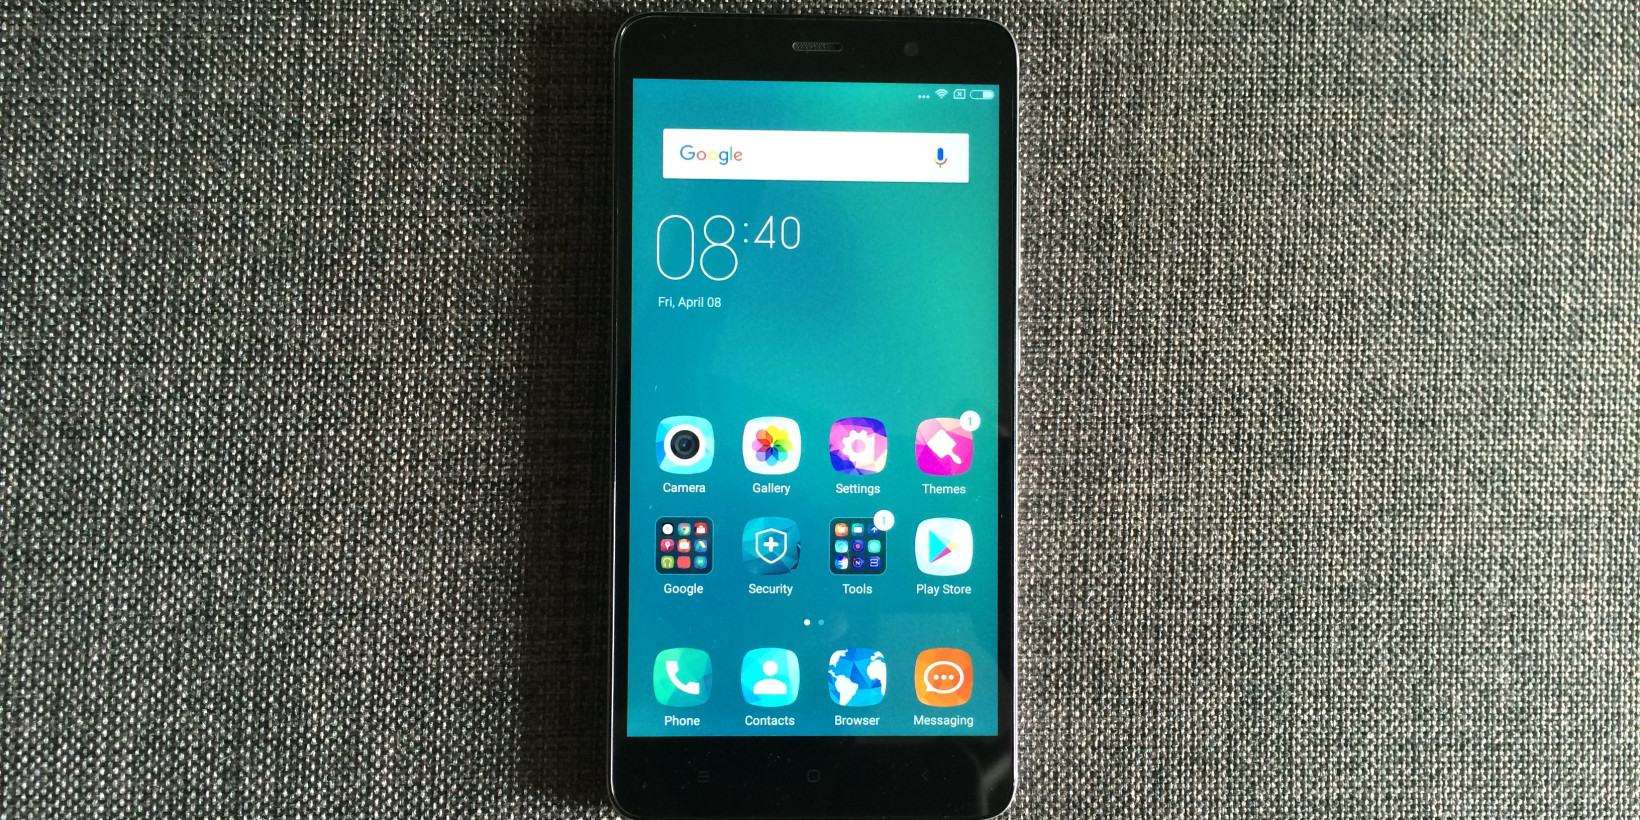 Xiaomi Redmi Note 3 review: The best $150 Android phone ever